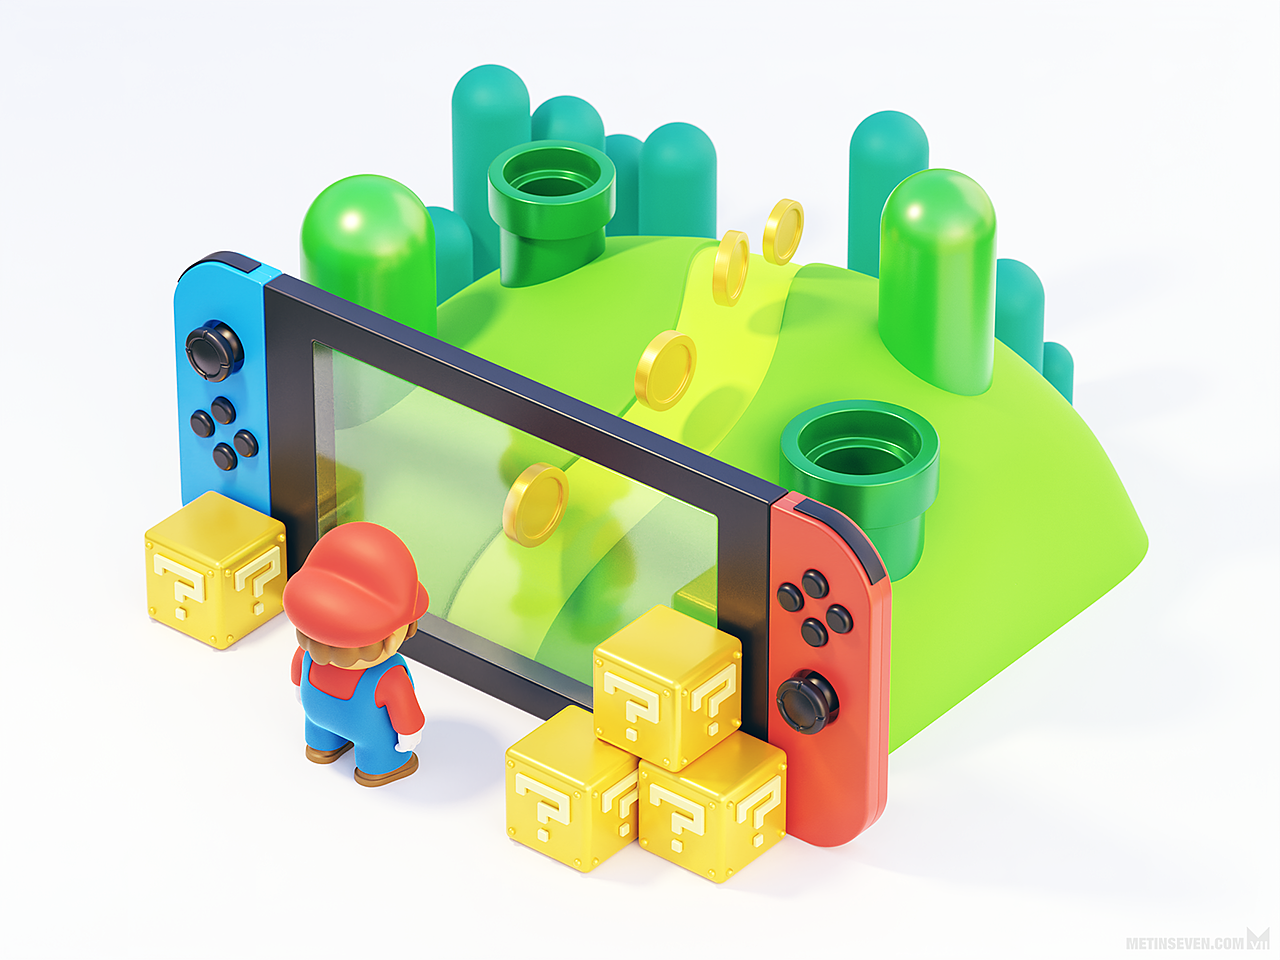 Making the Switch — 3D illustration featuring Mario